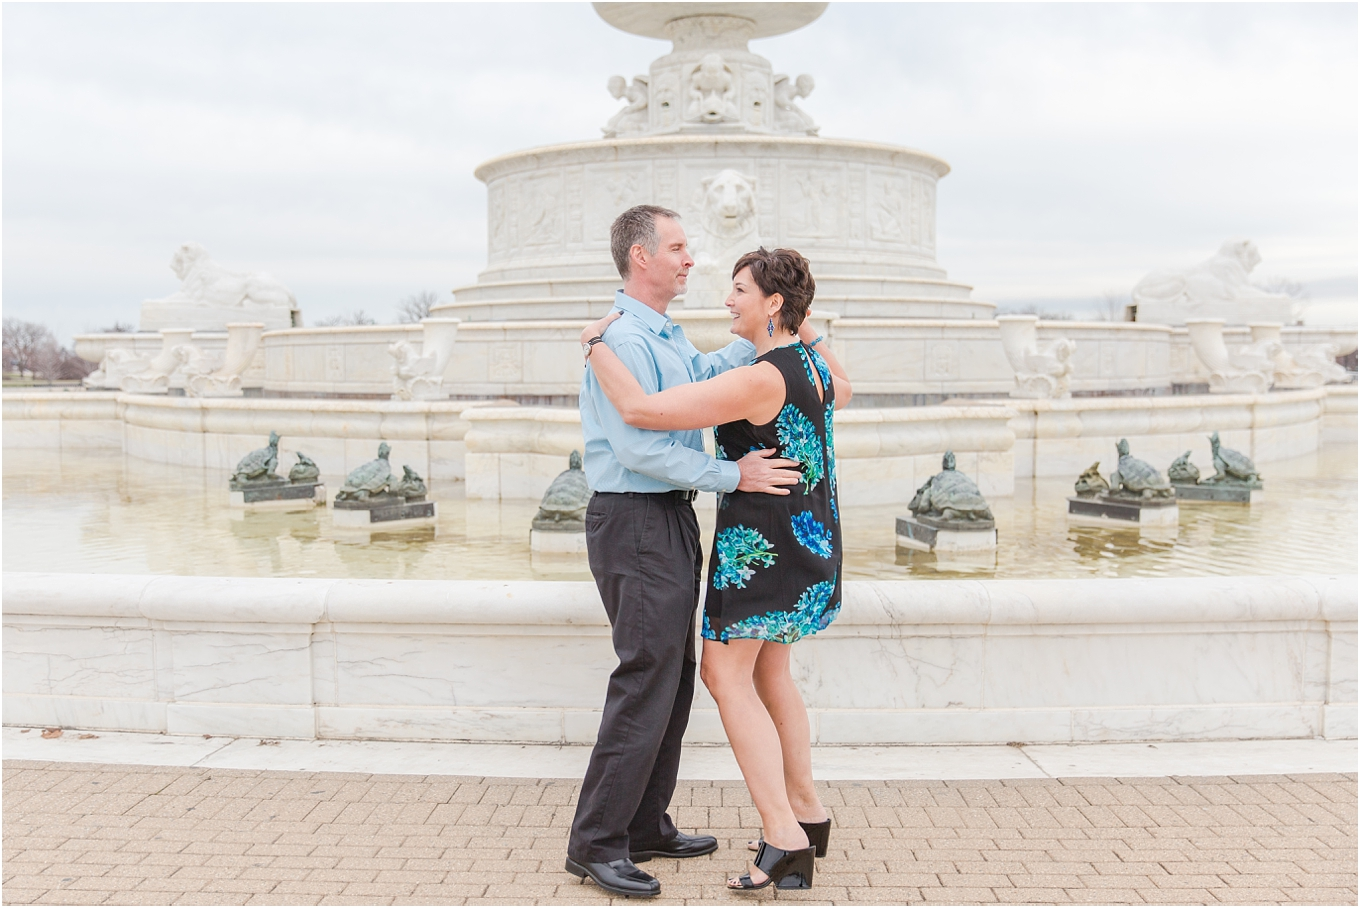 downtown-detroit-engagement-photos-on-belle-isle-by-courtney-carolyn-photography_0021.jpg